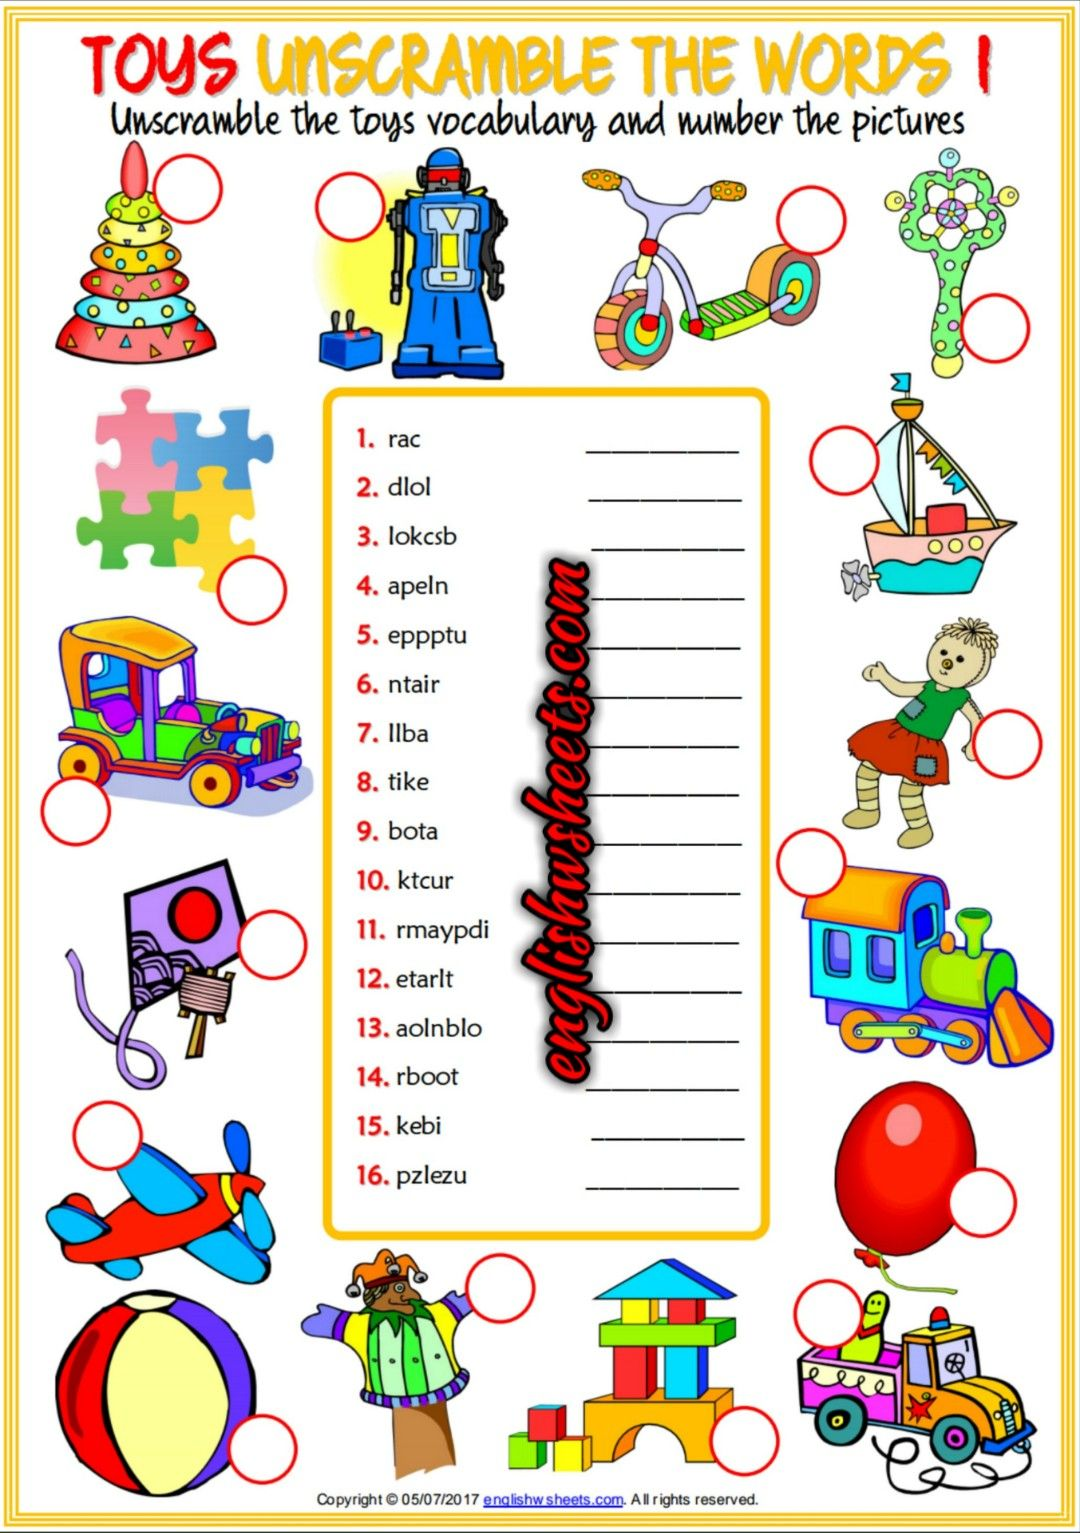 Toy Vocabulary Game : Toys esl printable unscramble the words worksheets for